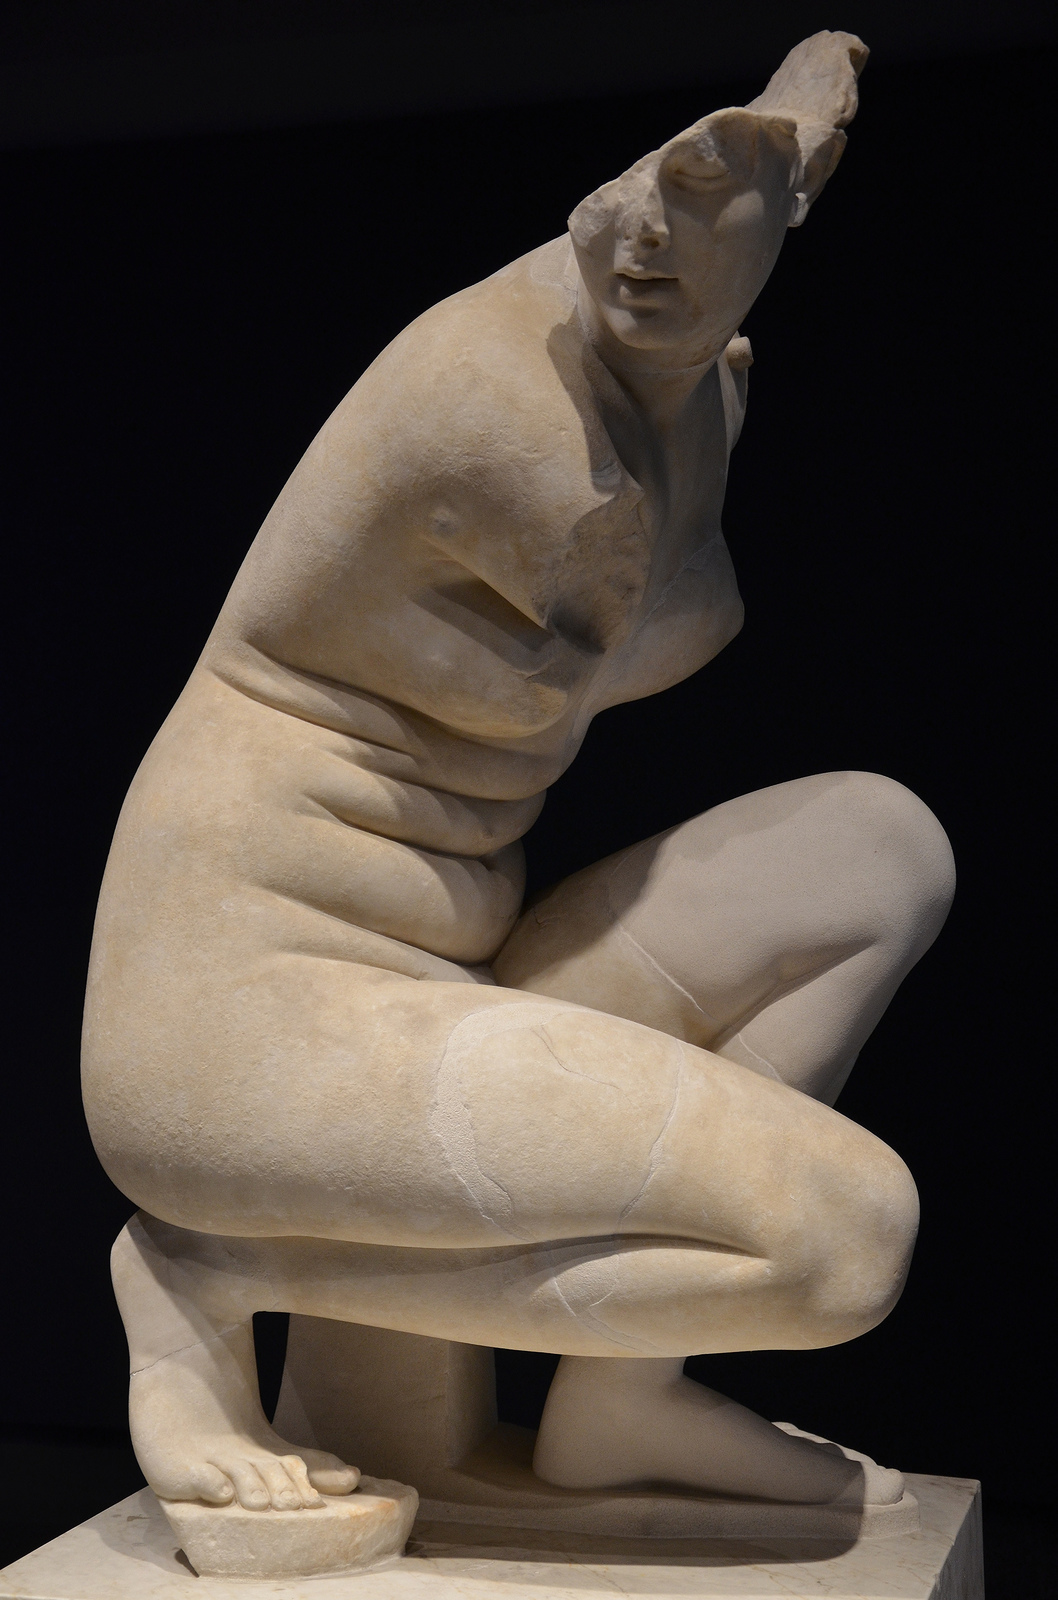 Art and sculptures from Hadrian's Villa: Marble statue of a crouching Aphrodite